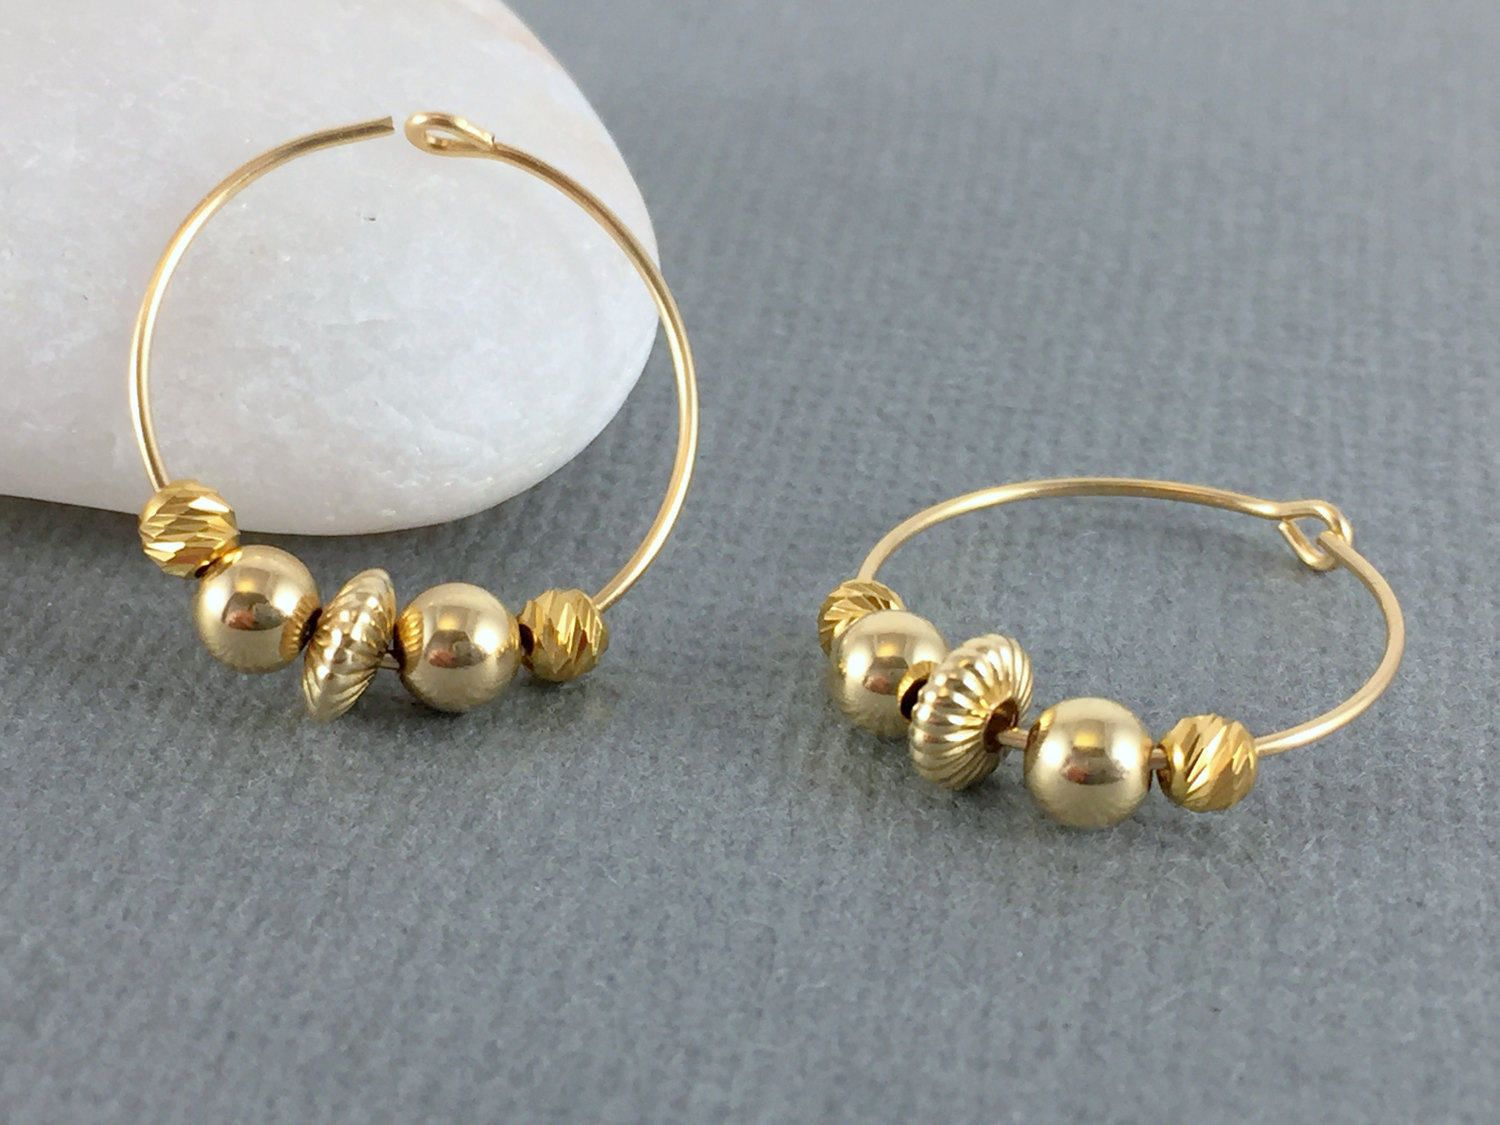 Delicate Gold Beaded Hoops, Gold Hoops, Small Hoop Earrings, Bead Hoop  Earrings, Bridesmaid Earrings, Gold Hoop Earrings, Small Gold Hoops